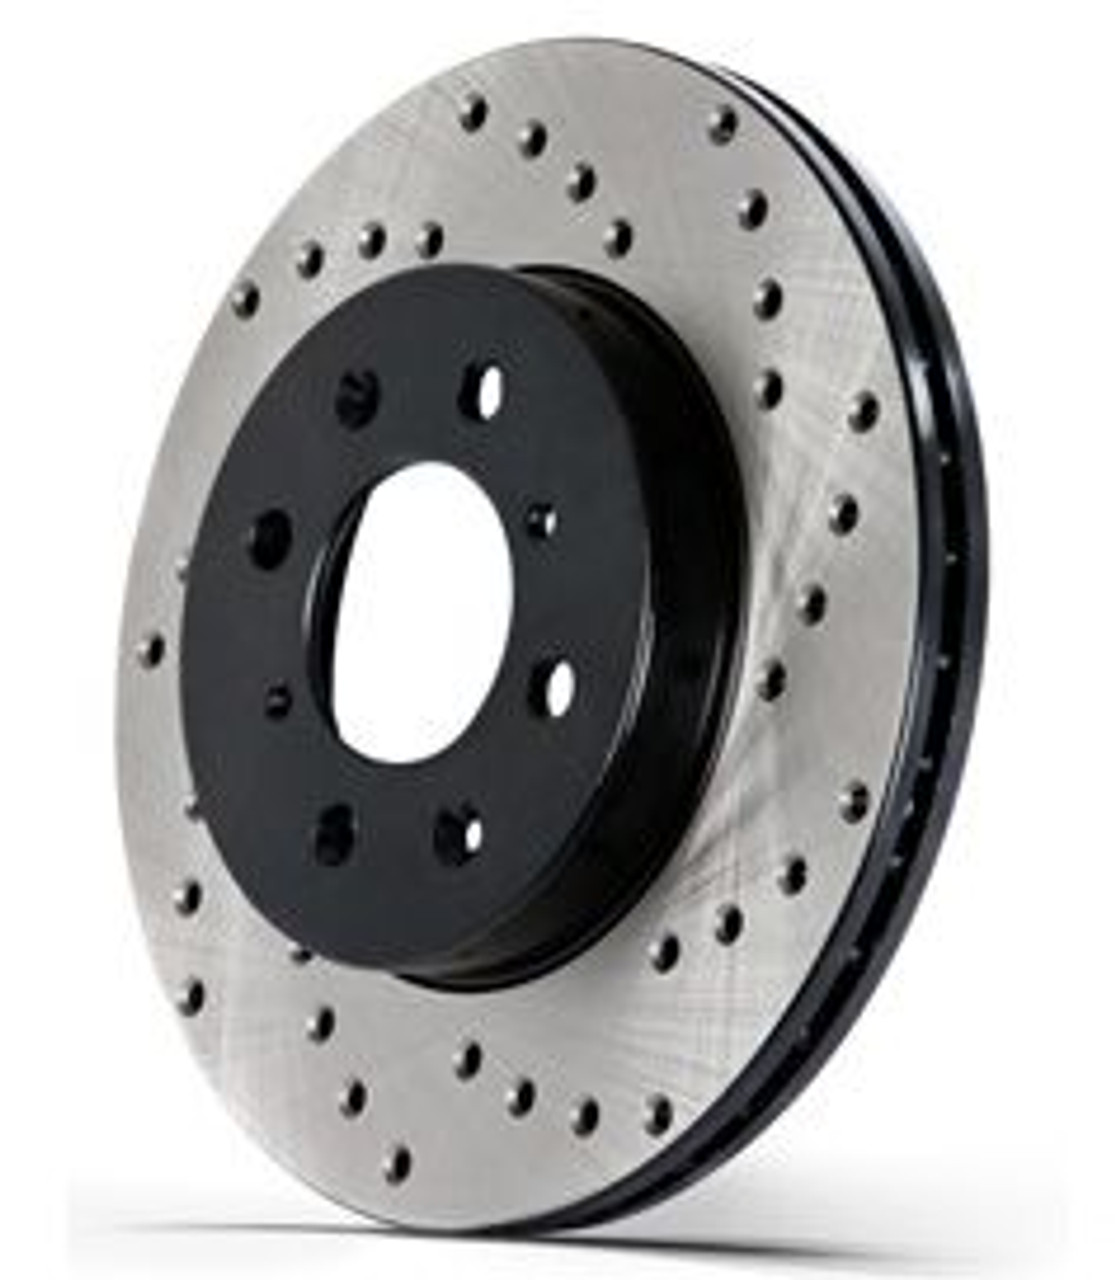 For BMW F10 535i Front /& Rear Drilled /& Slotted Brake Disc Rotors StopTech